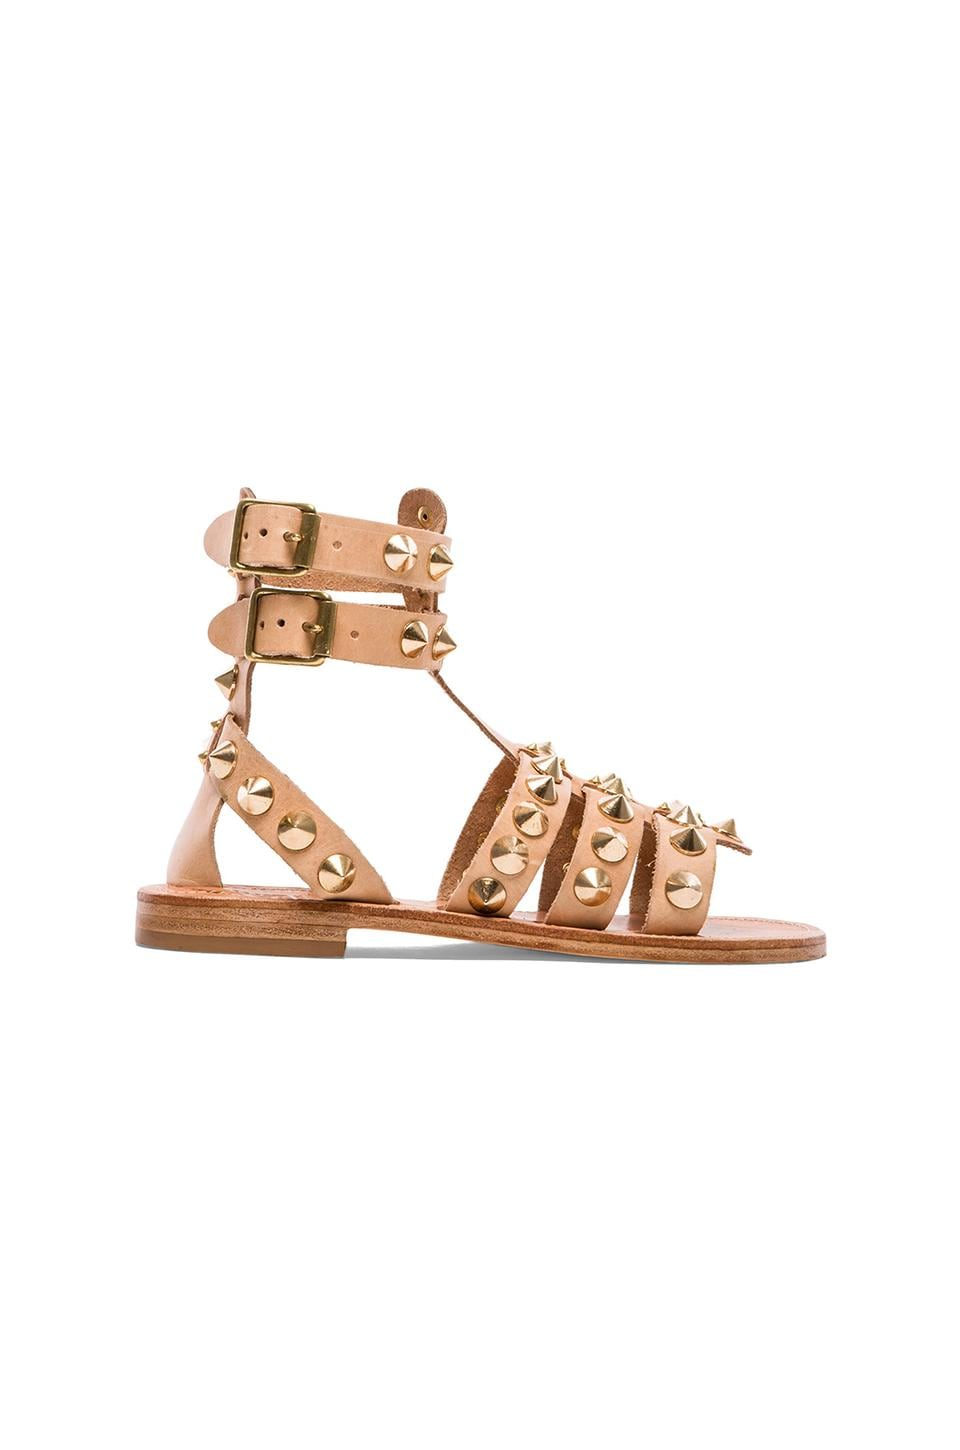 ANINE BING Studded Sandal in Natural